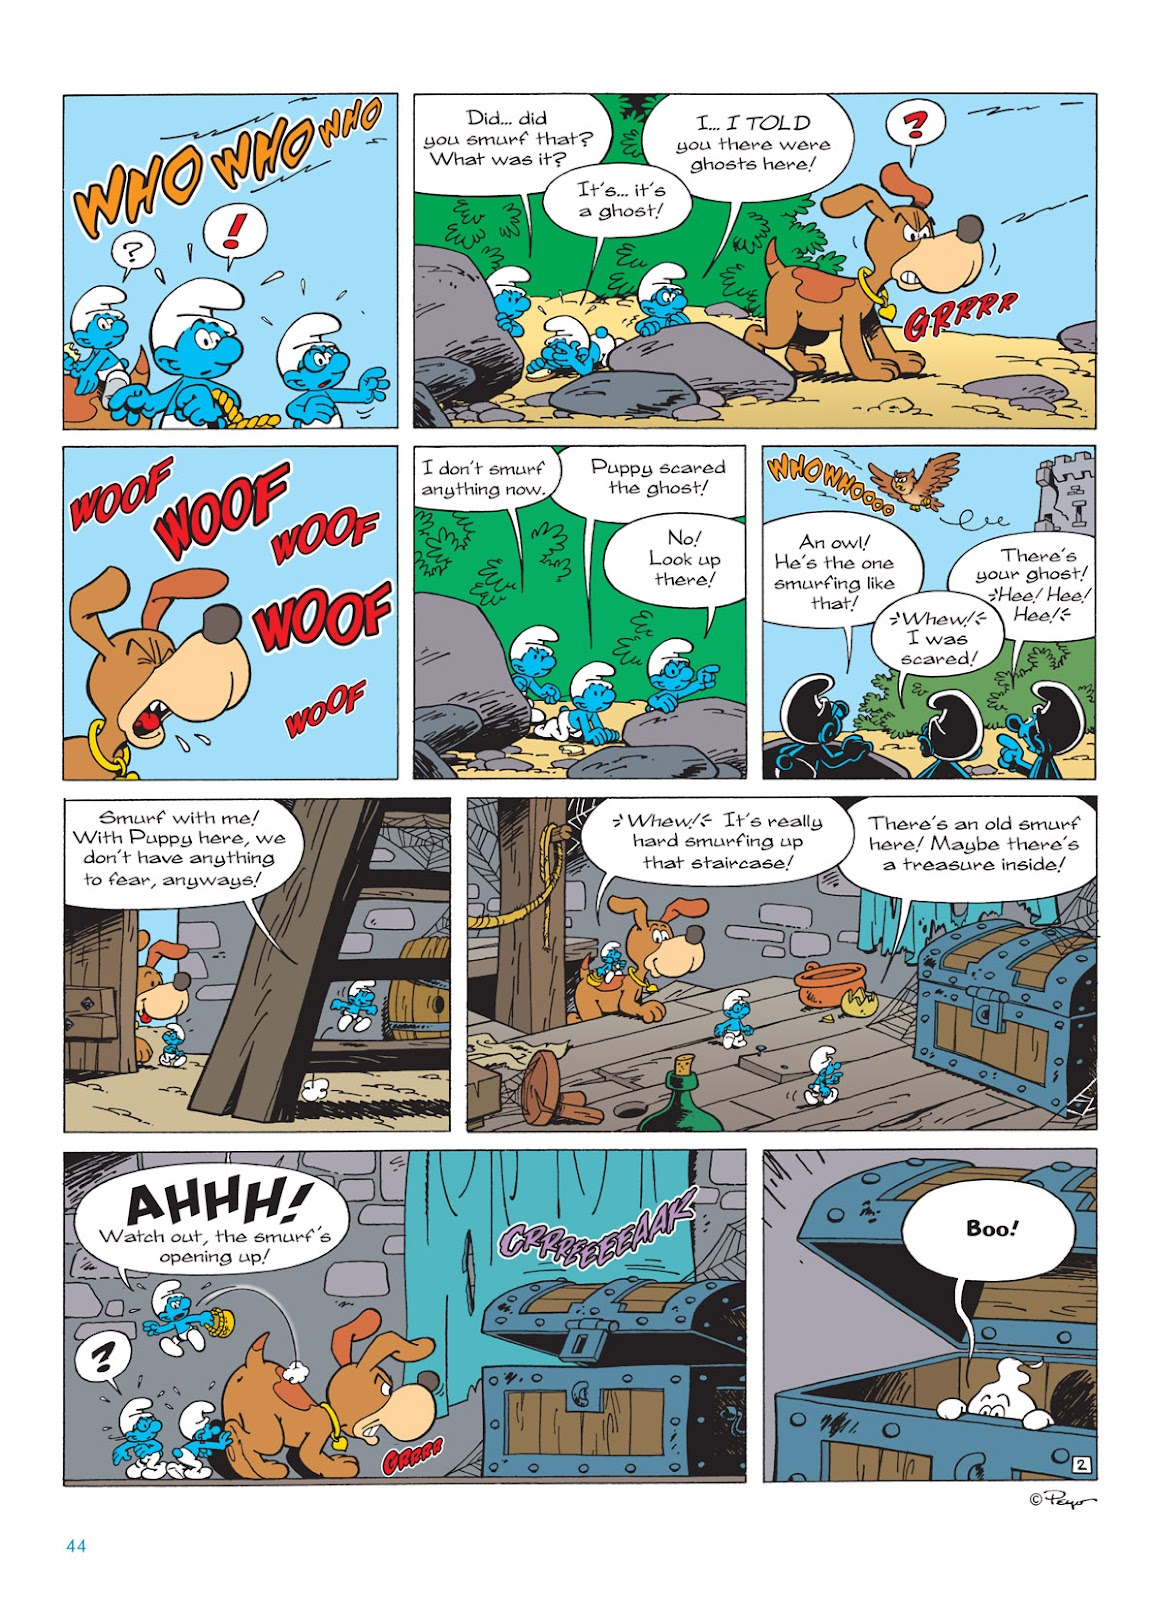 Read online The Smurfs comic -  Issue #9 - 44